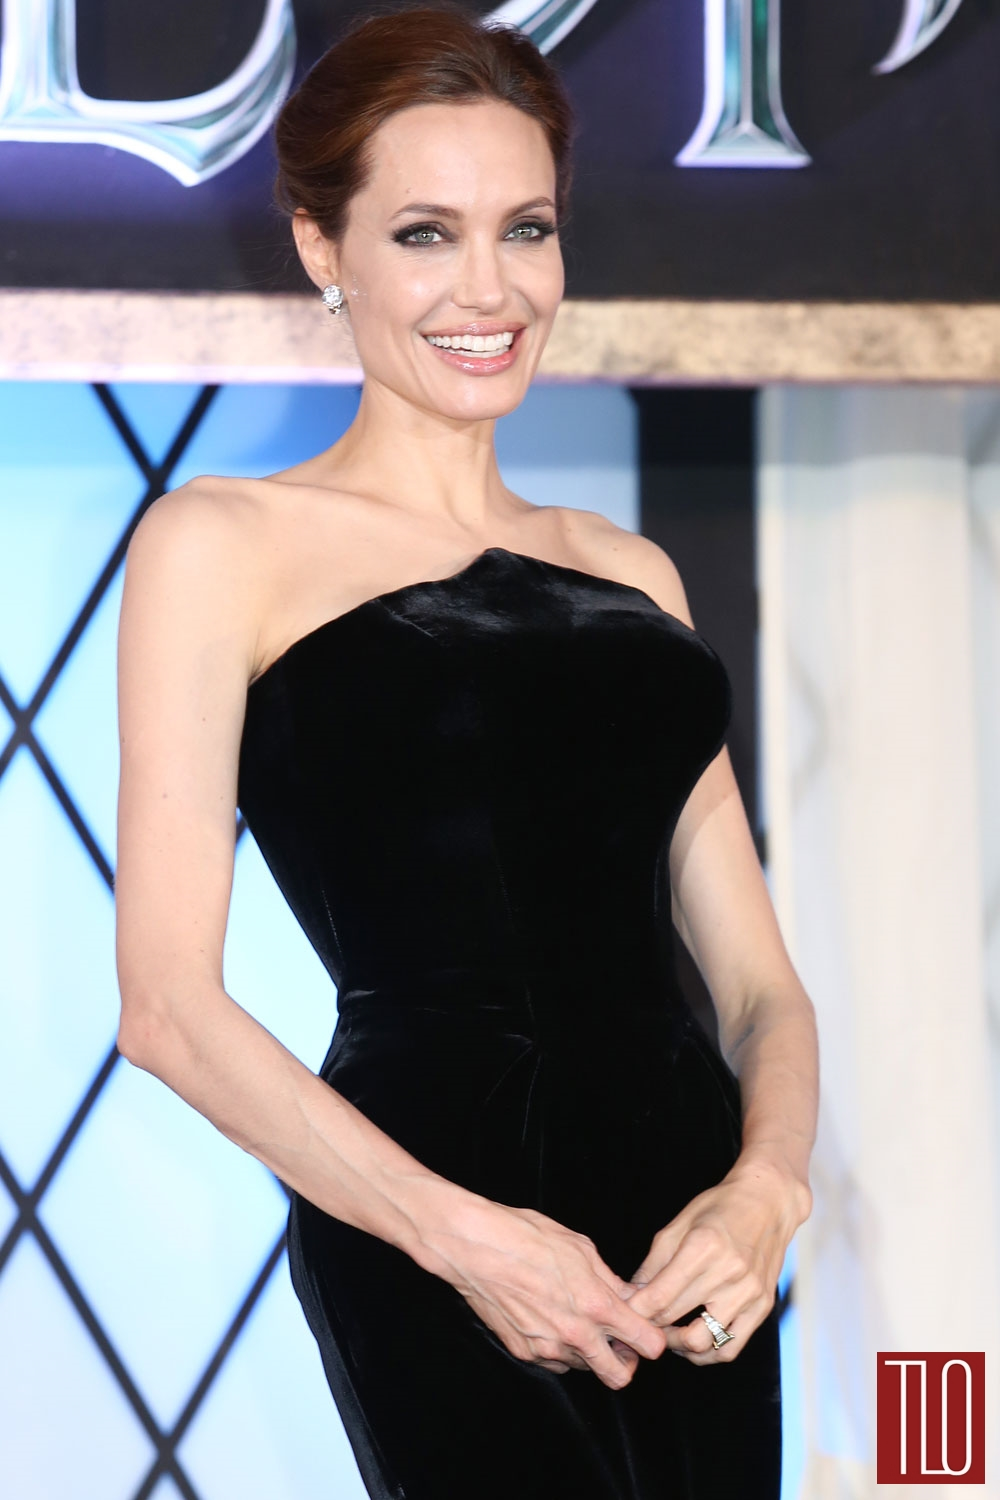 Angelina-Jolie-Atelier-Versace-Maleficent-Japan-Premiere-Tom-Lorenzo-Site-TLO (1)